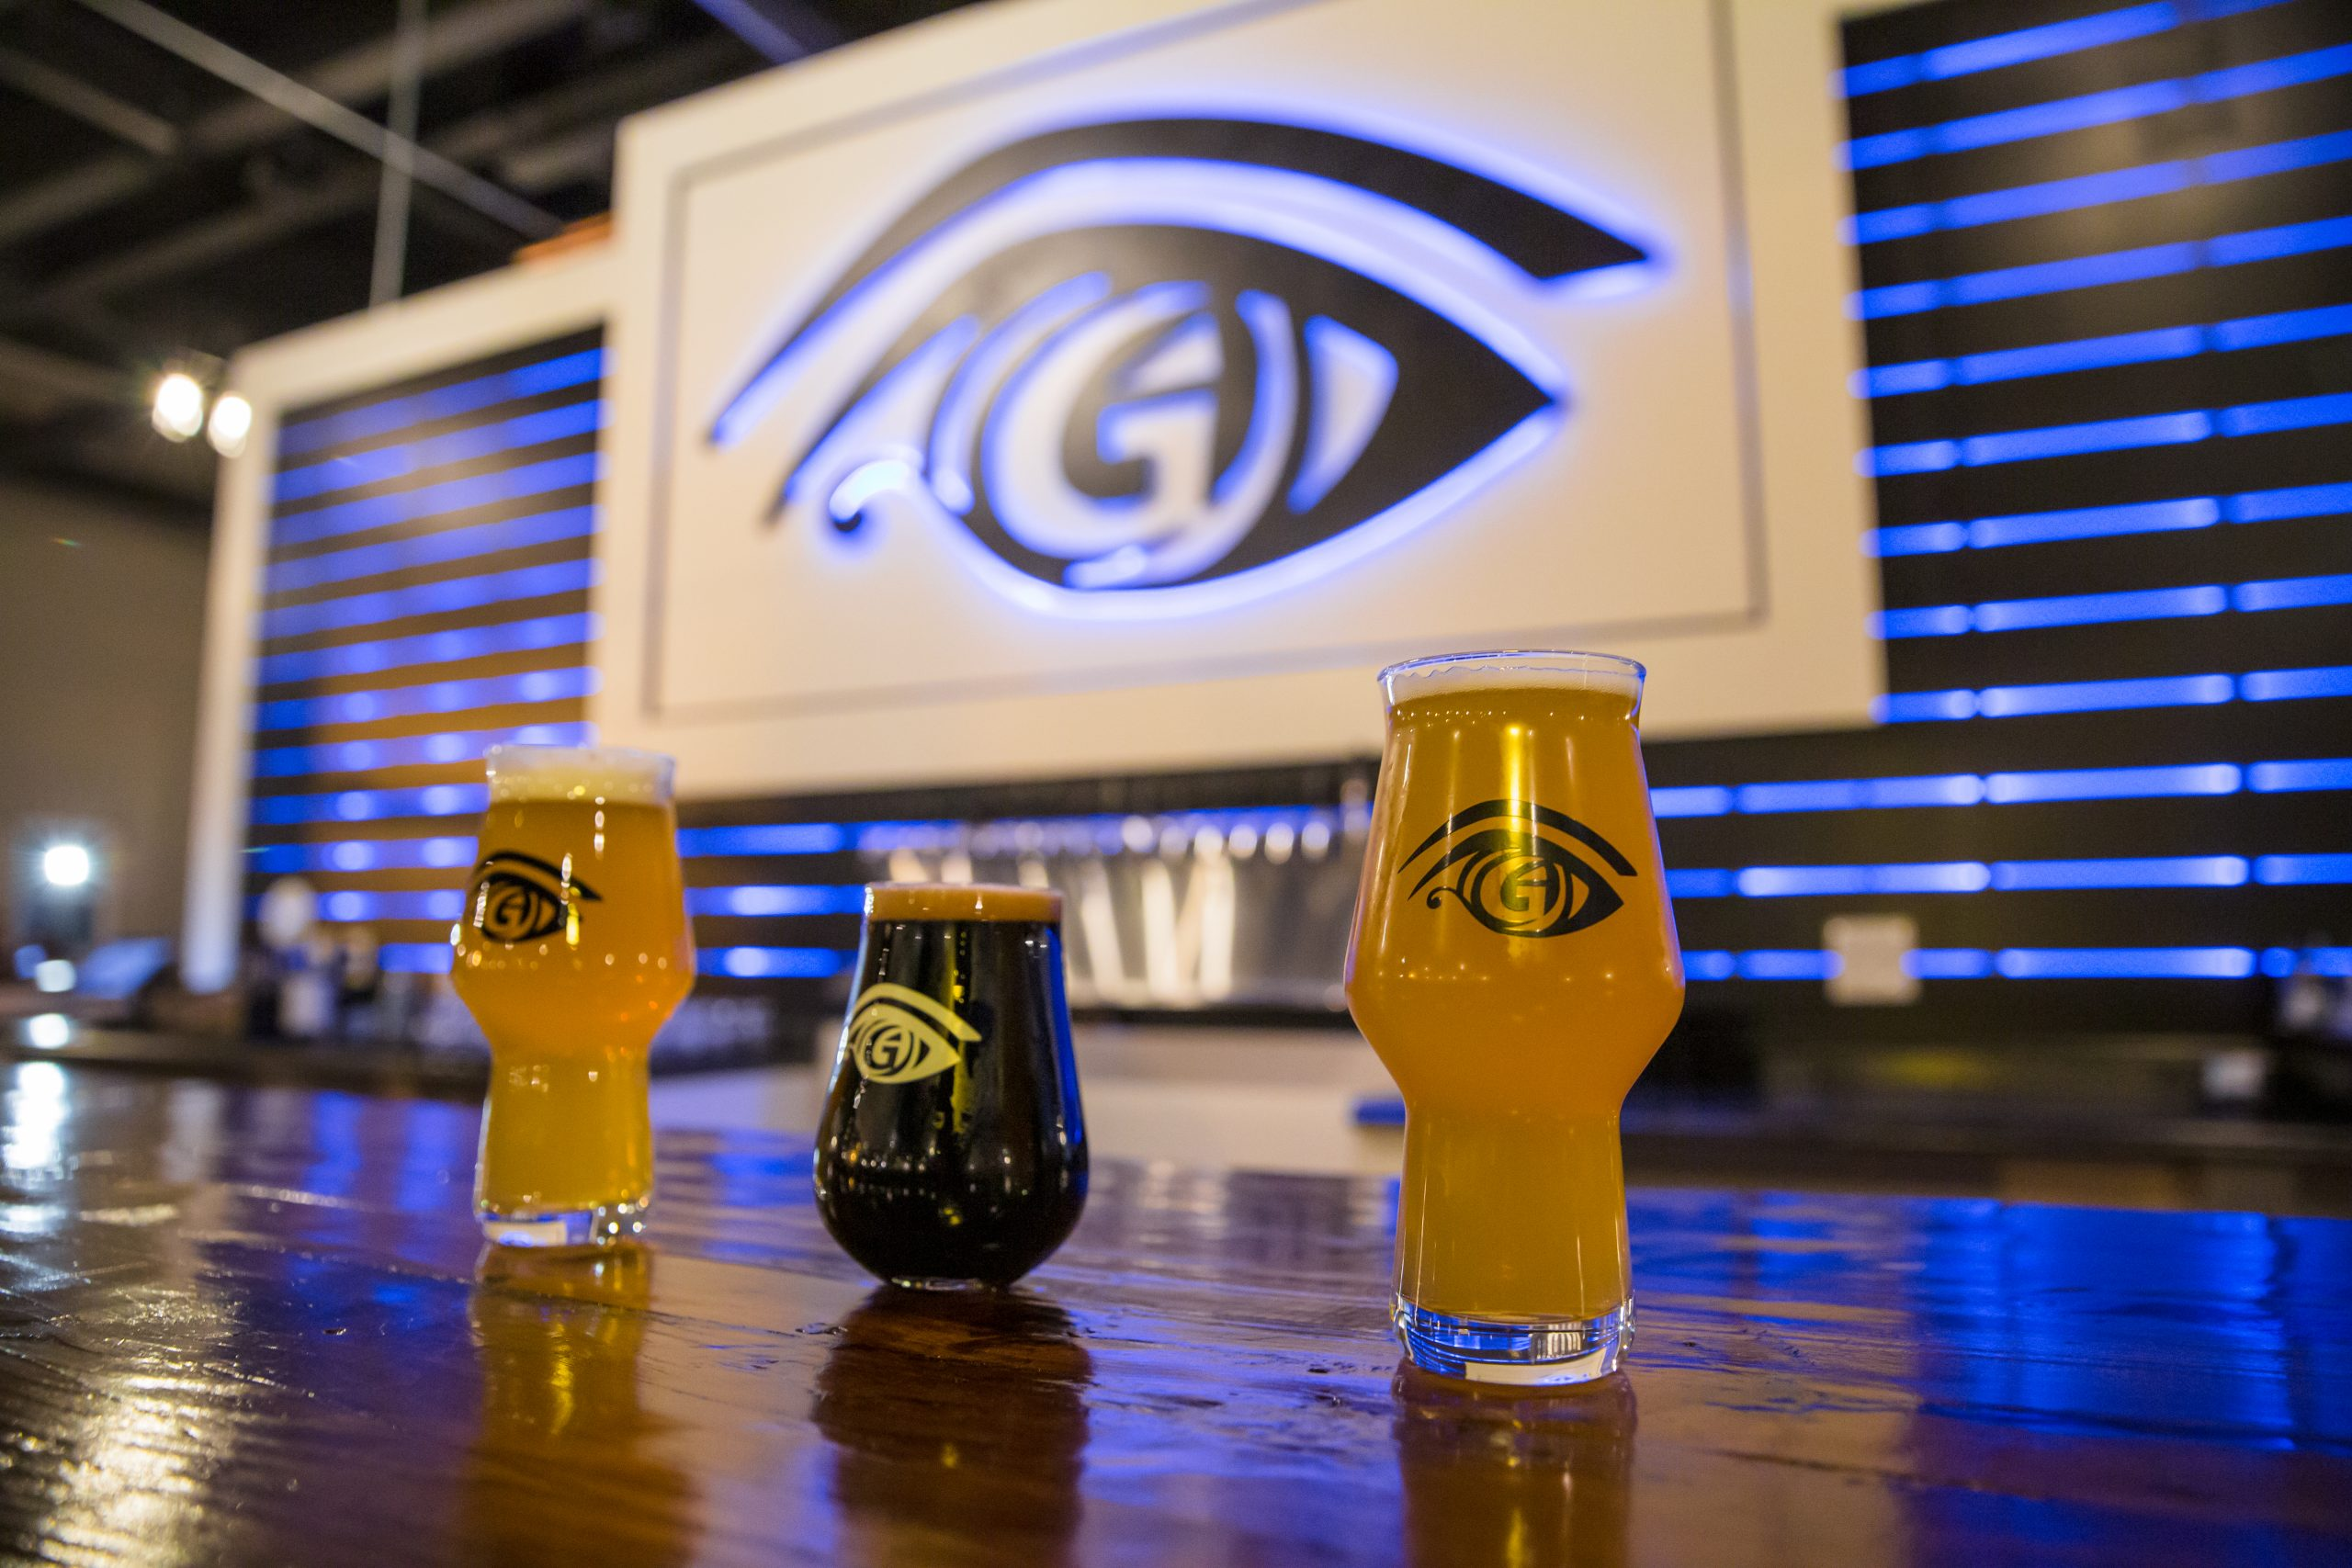 Great Awakening Brewing Taproom and Beer Pours